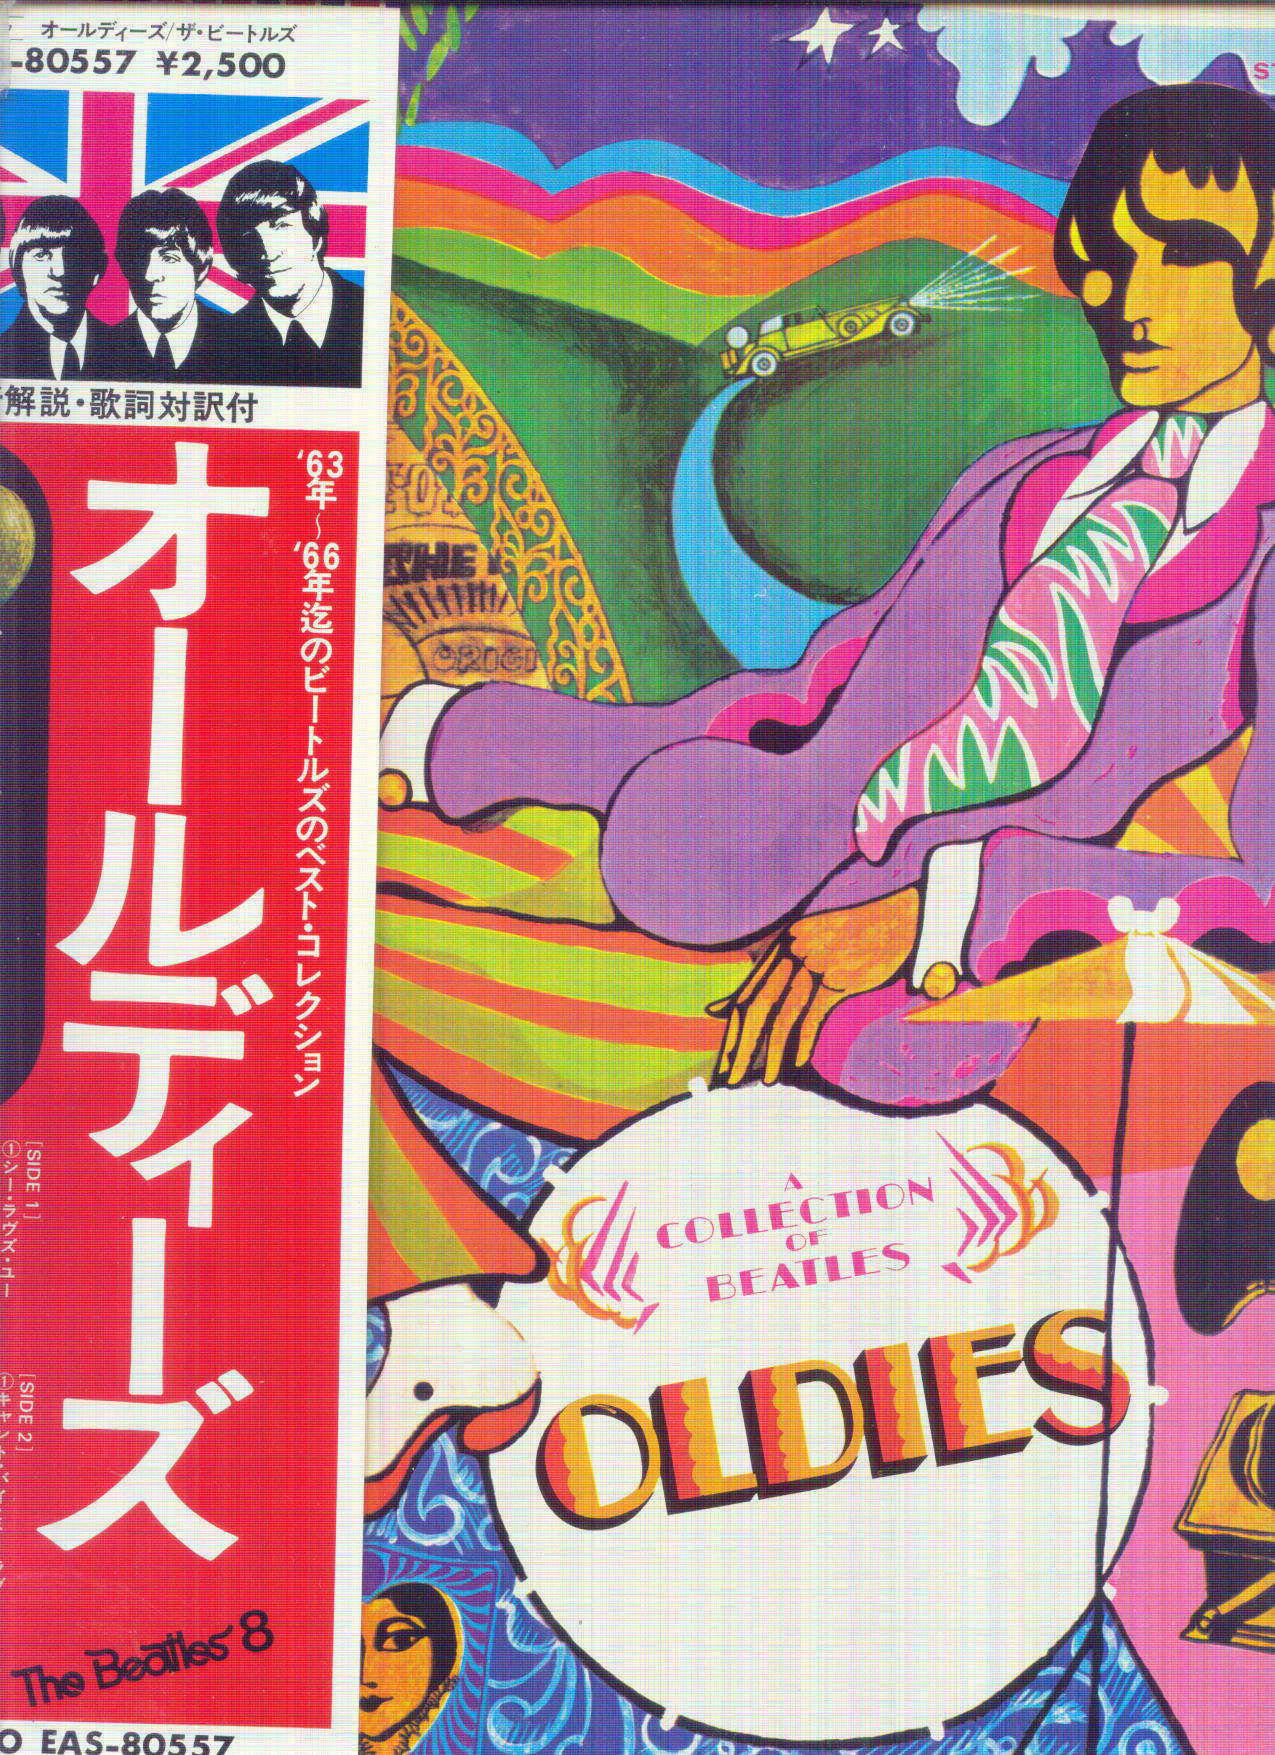 THE BEATLES A BEATLES' COLLECTION OF OLDIES (JAPAN PRESSING - STEREO)